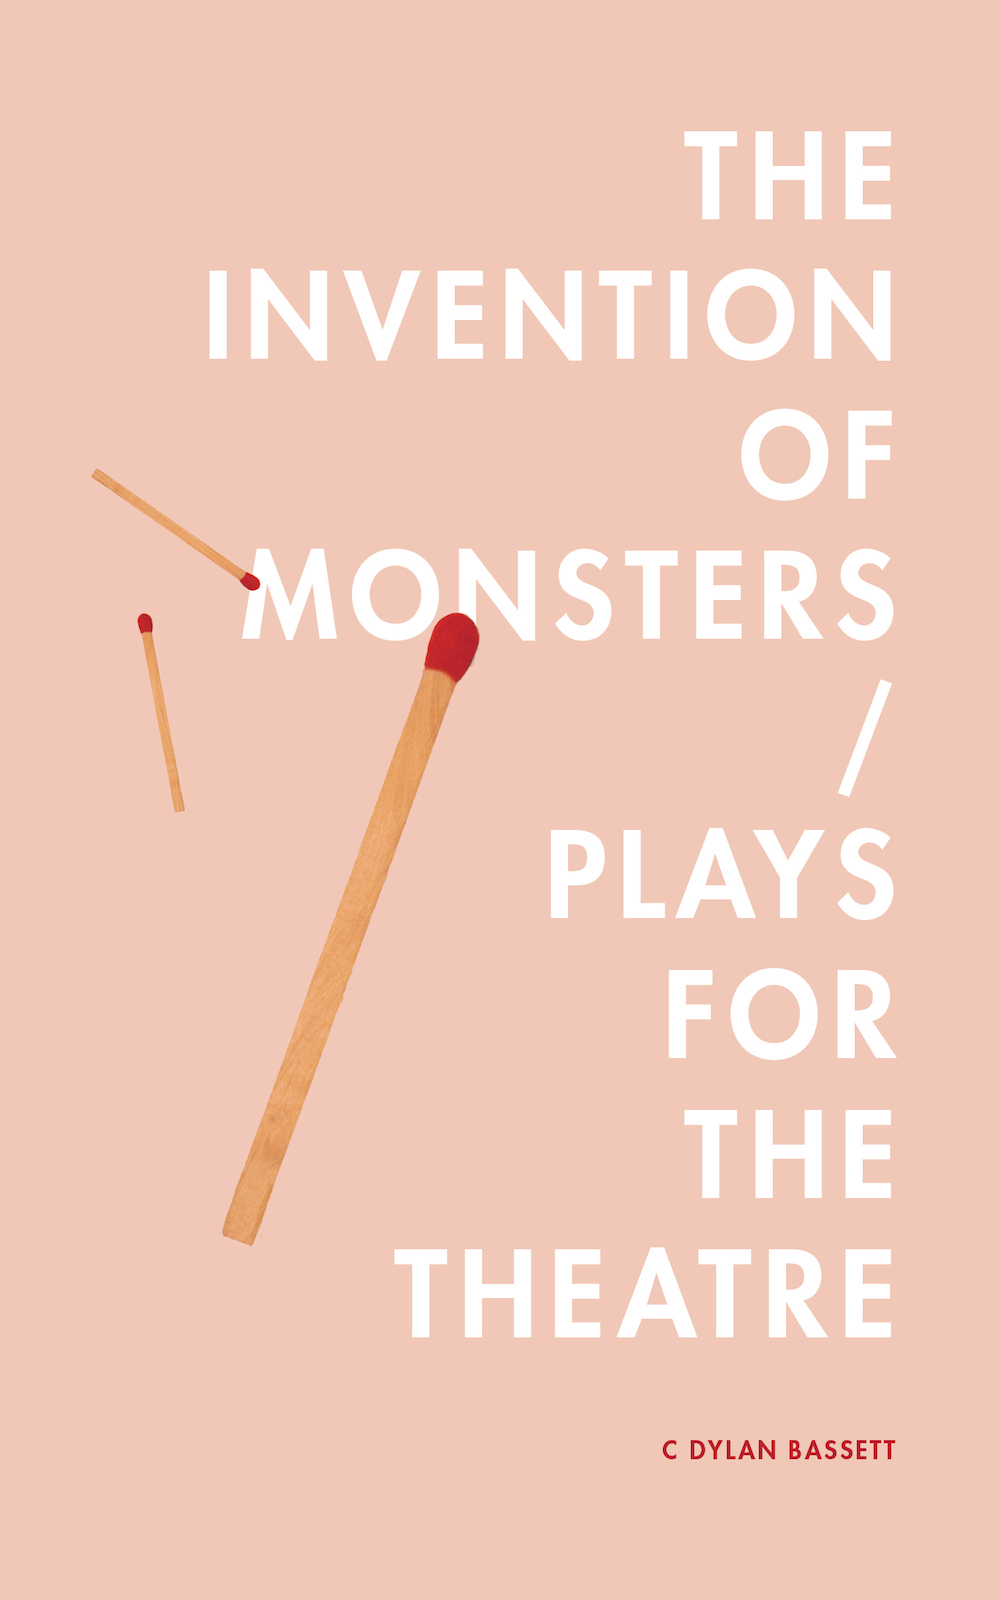 The Invention of Monsters / Plays for the Theatre